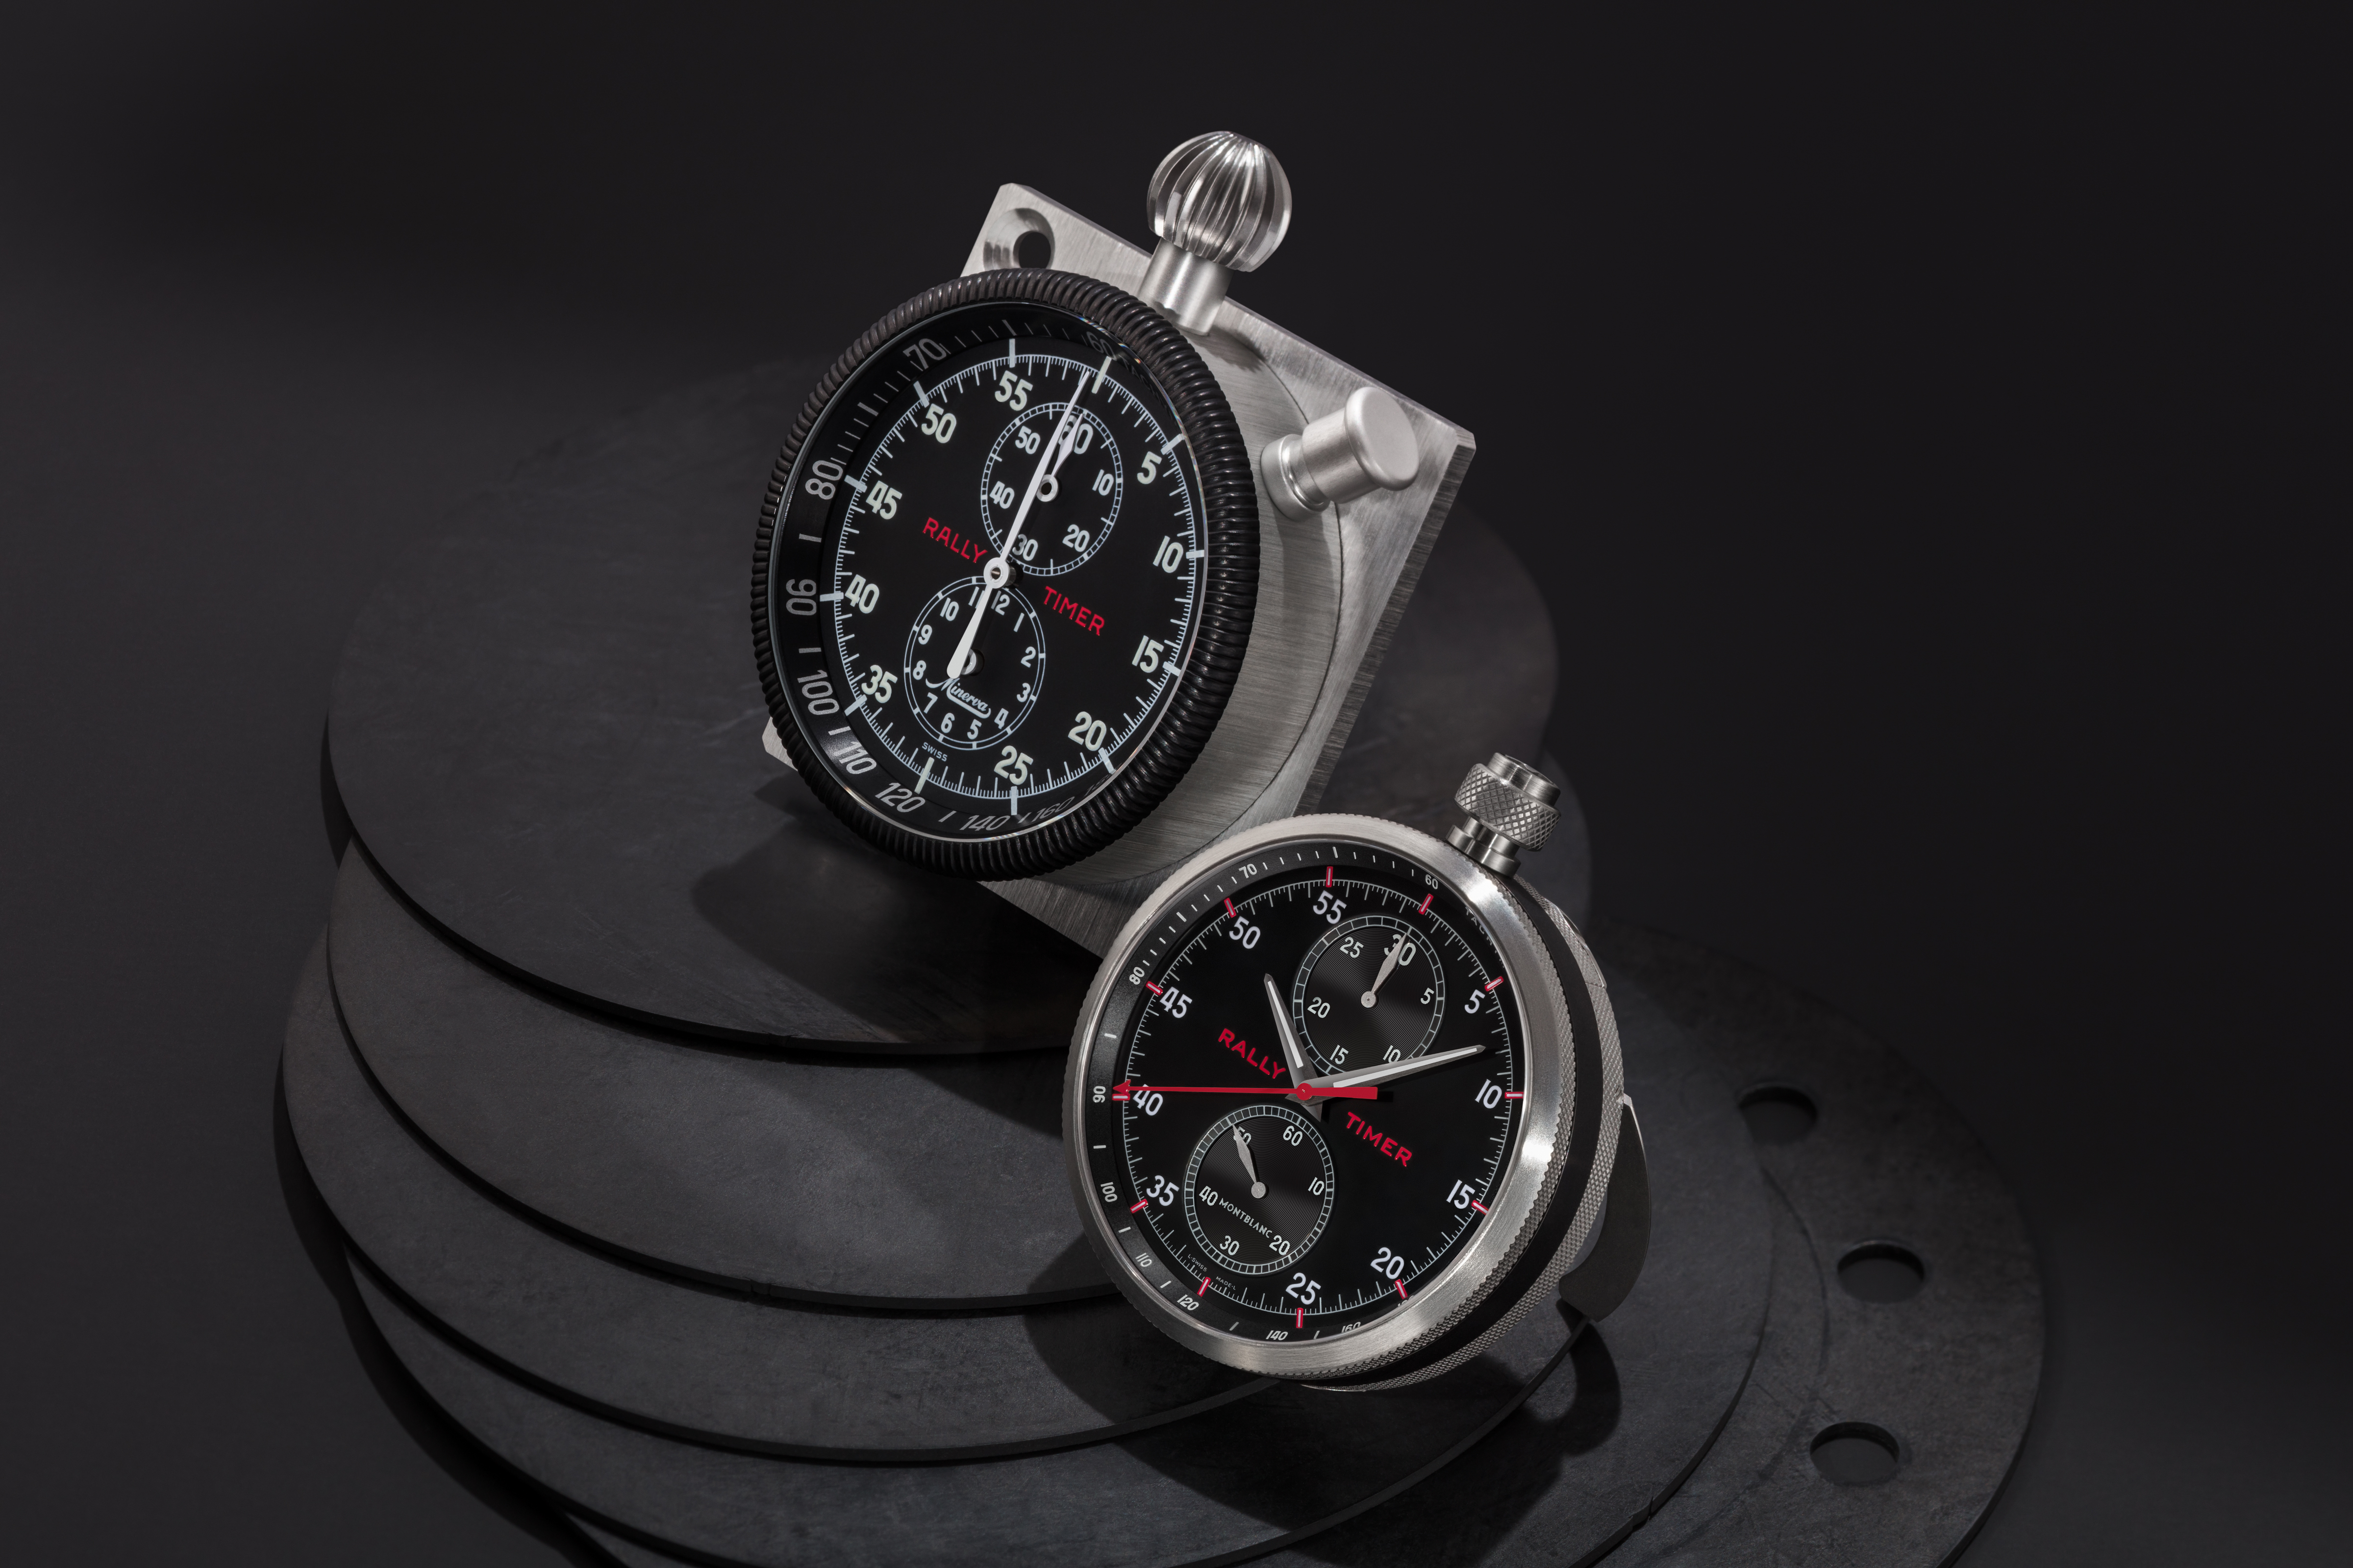 Montblanc TimeWalker Chronograph Rally Timer Counter in two of its transformations